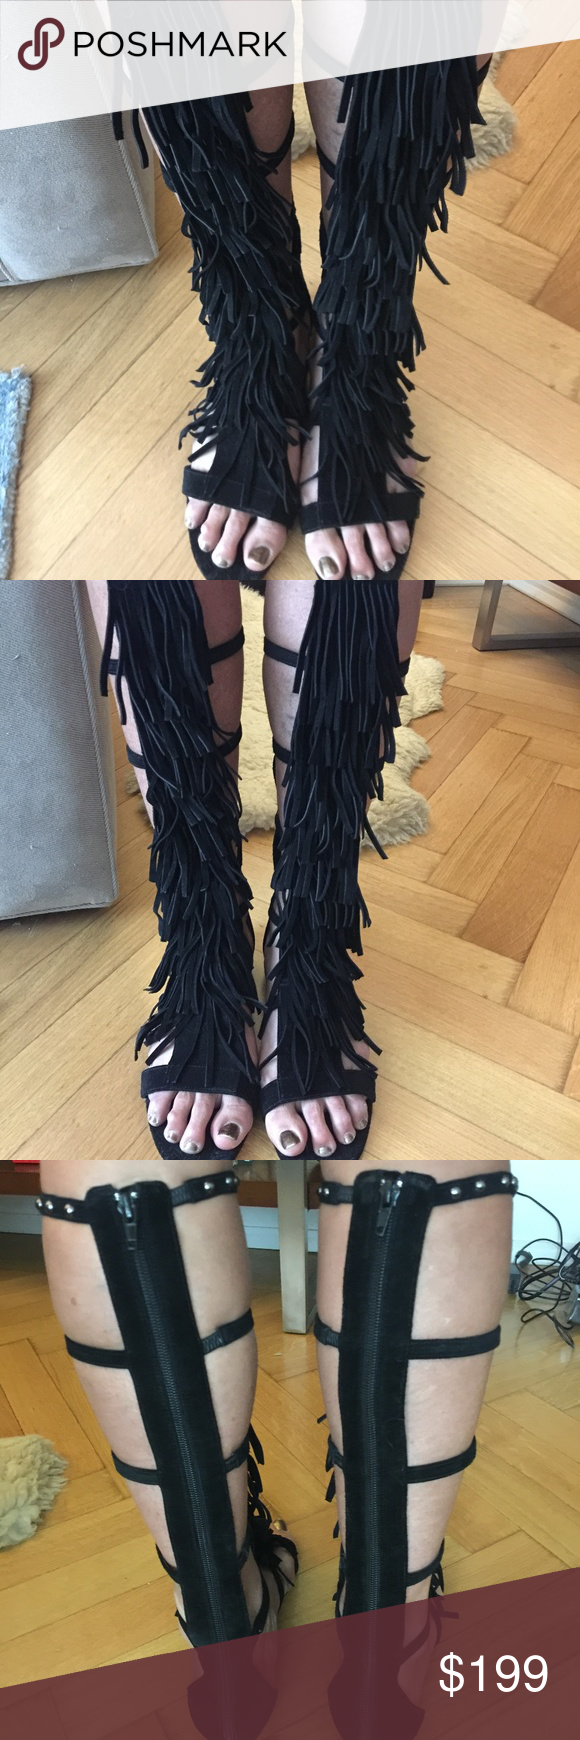 6e6a721db4a7 New Alice and Olivia Fringe Stud Suede Sandals New Alice and Olivia Paula  Fringe and Studs Suede Gladiator Sandals. Retail  398.00. Size  39EU 8.5US.